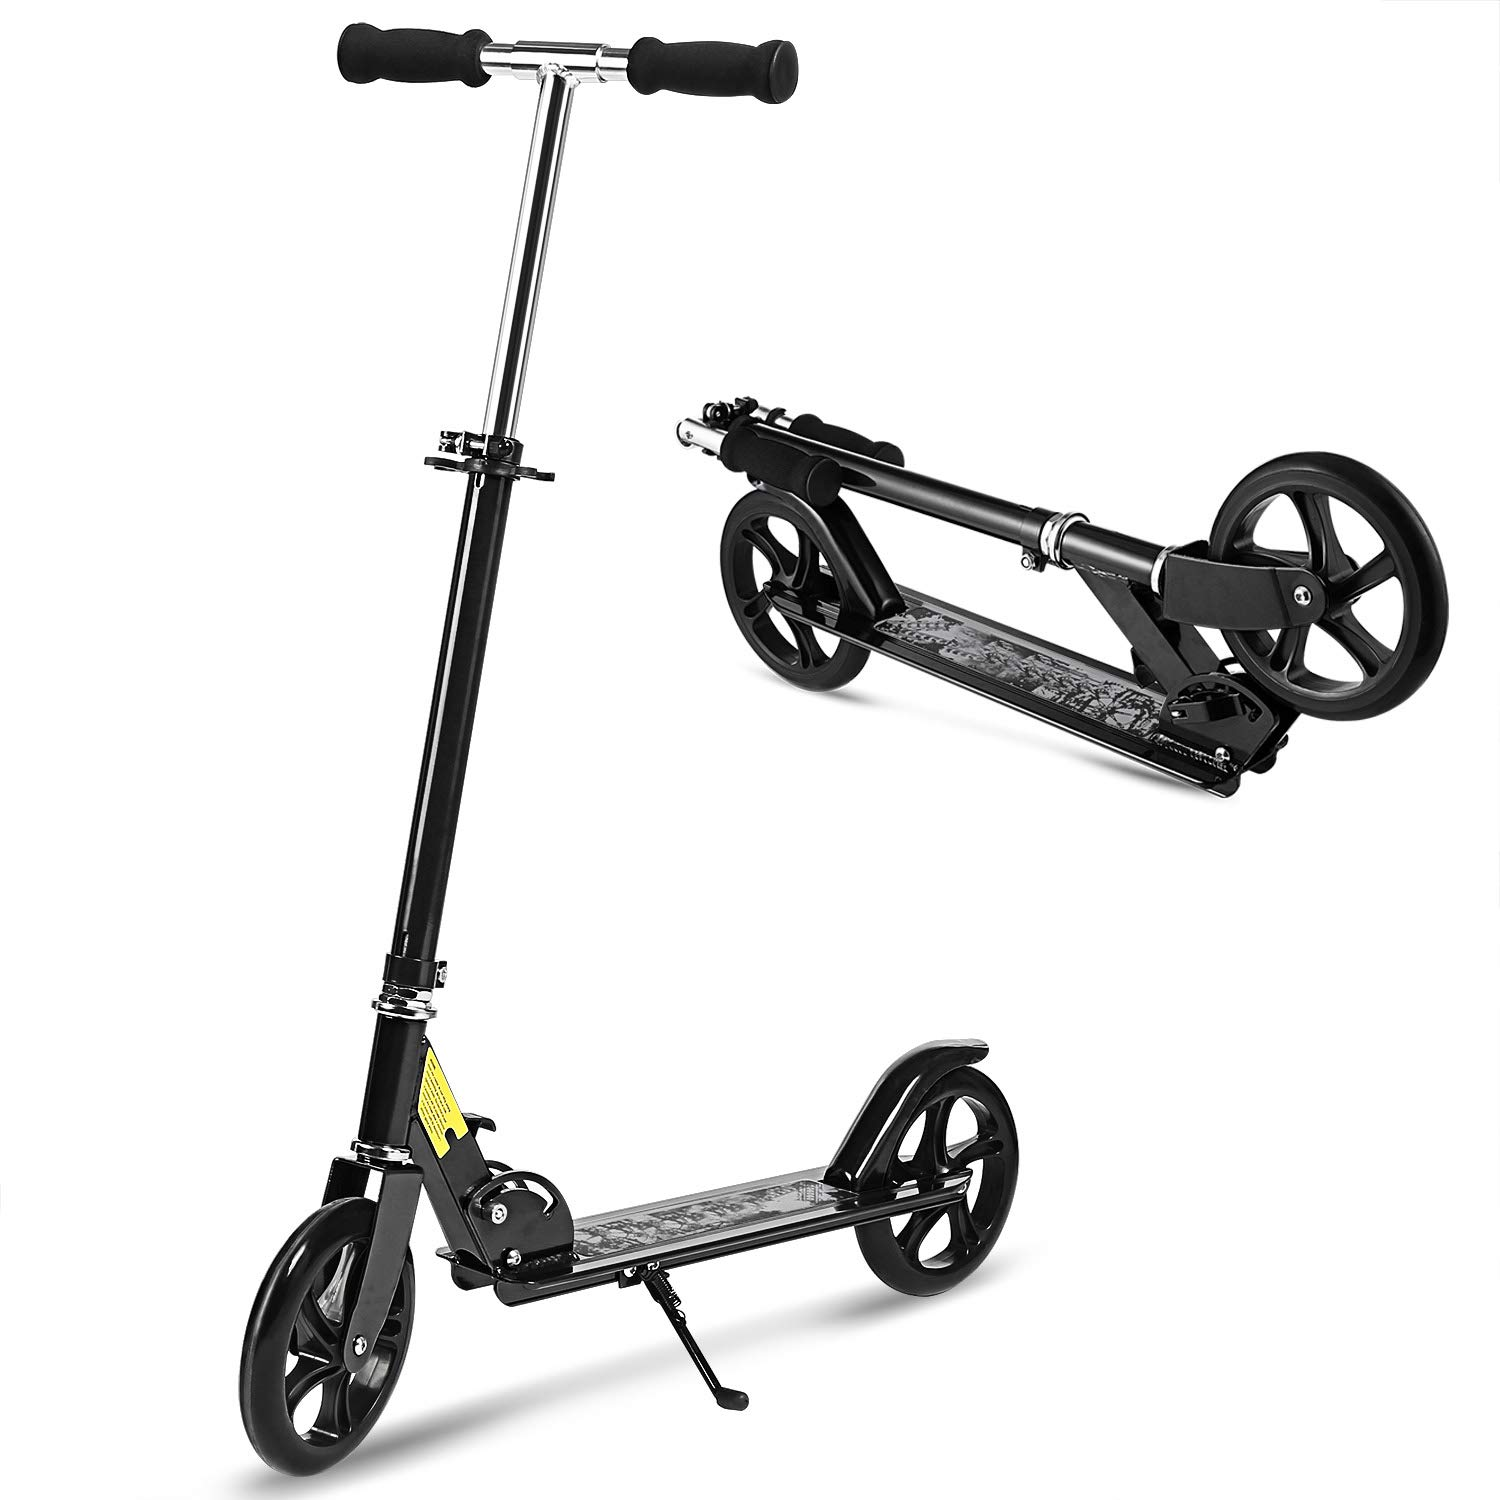 Hikole Scooter for Adult Youth Kids - Foldable Adjustable Portable Ultra-Lightweight | Teen Kick Scooter with Shoulder Strap, Birthday Gifts for Kids 8 Years Old and Up | Support 220 lbs by Hikole